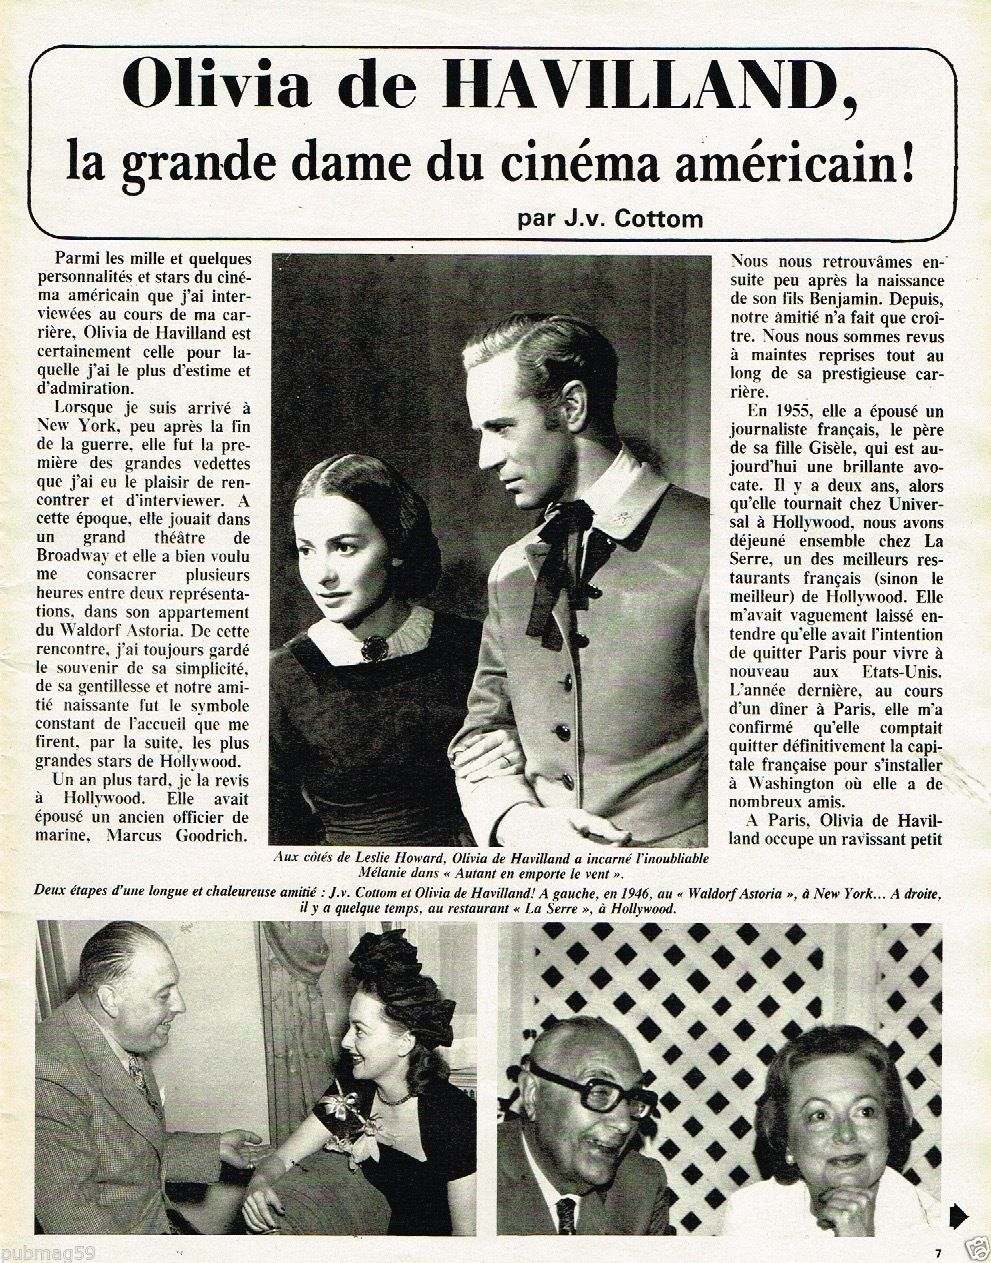 Coupure DE Presse Clipping 1981 5 Pages Olivia DE Havilland | eBay.Olivia de Havilland birthday countdown #27 days to go!